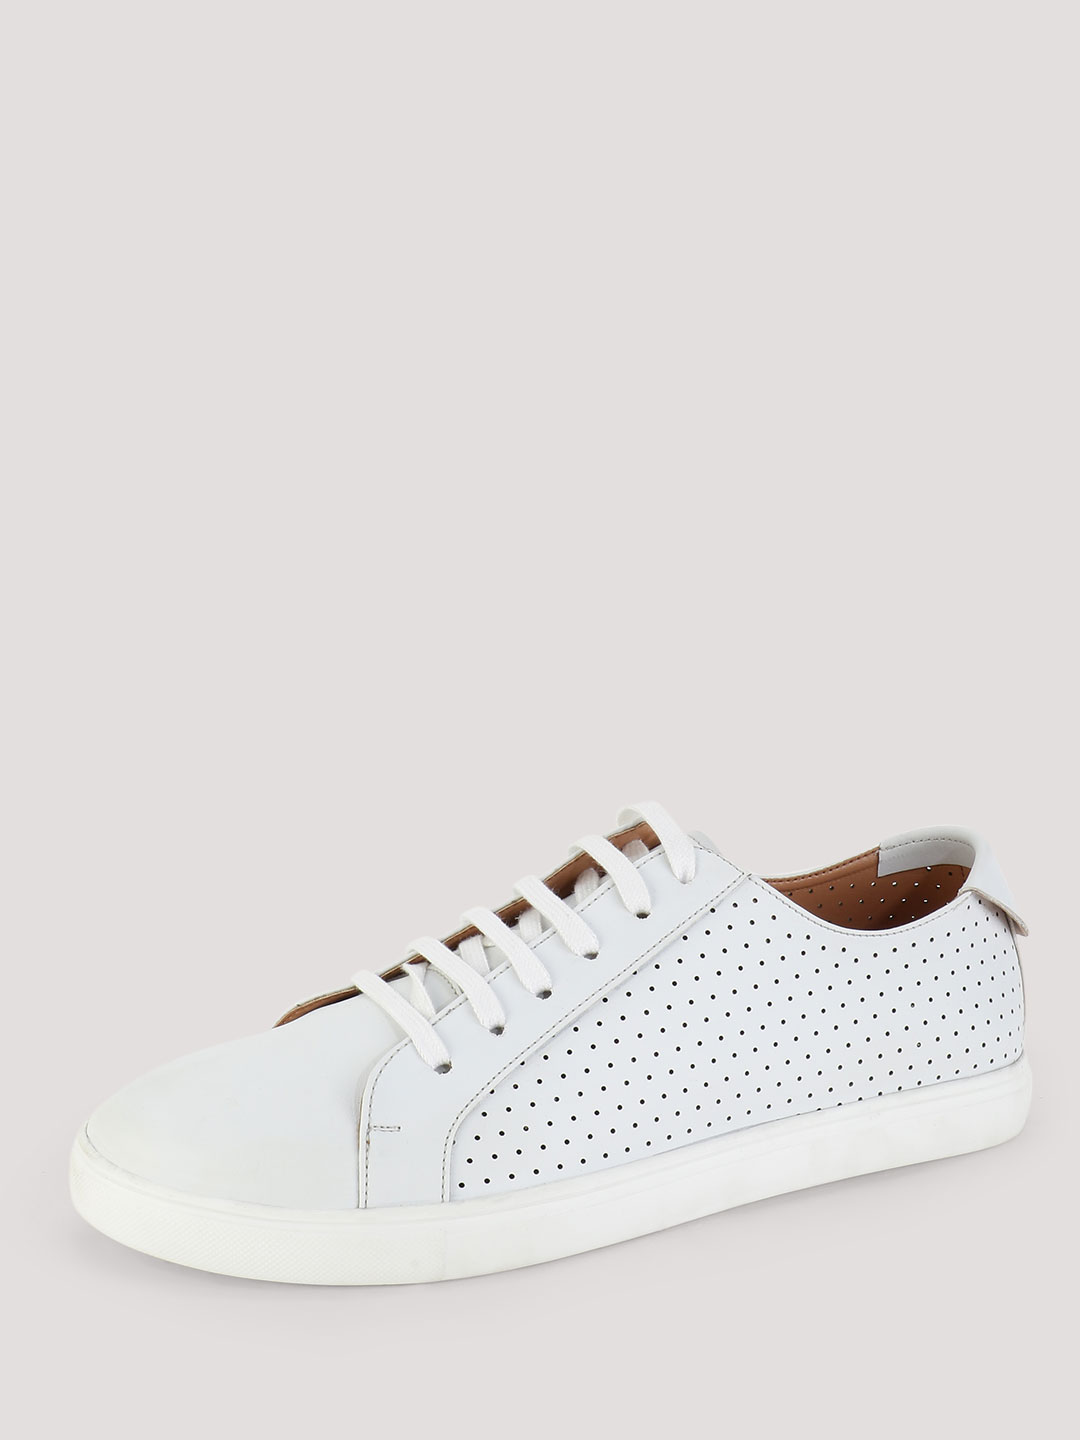 Griffin Shoe with Perforated S...